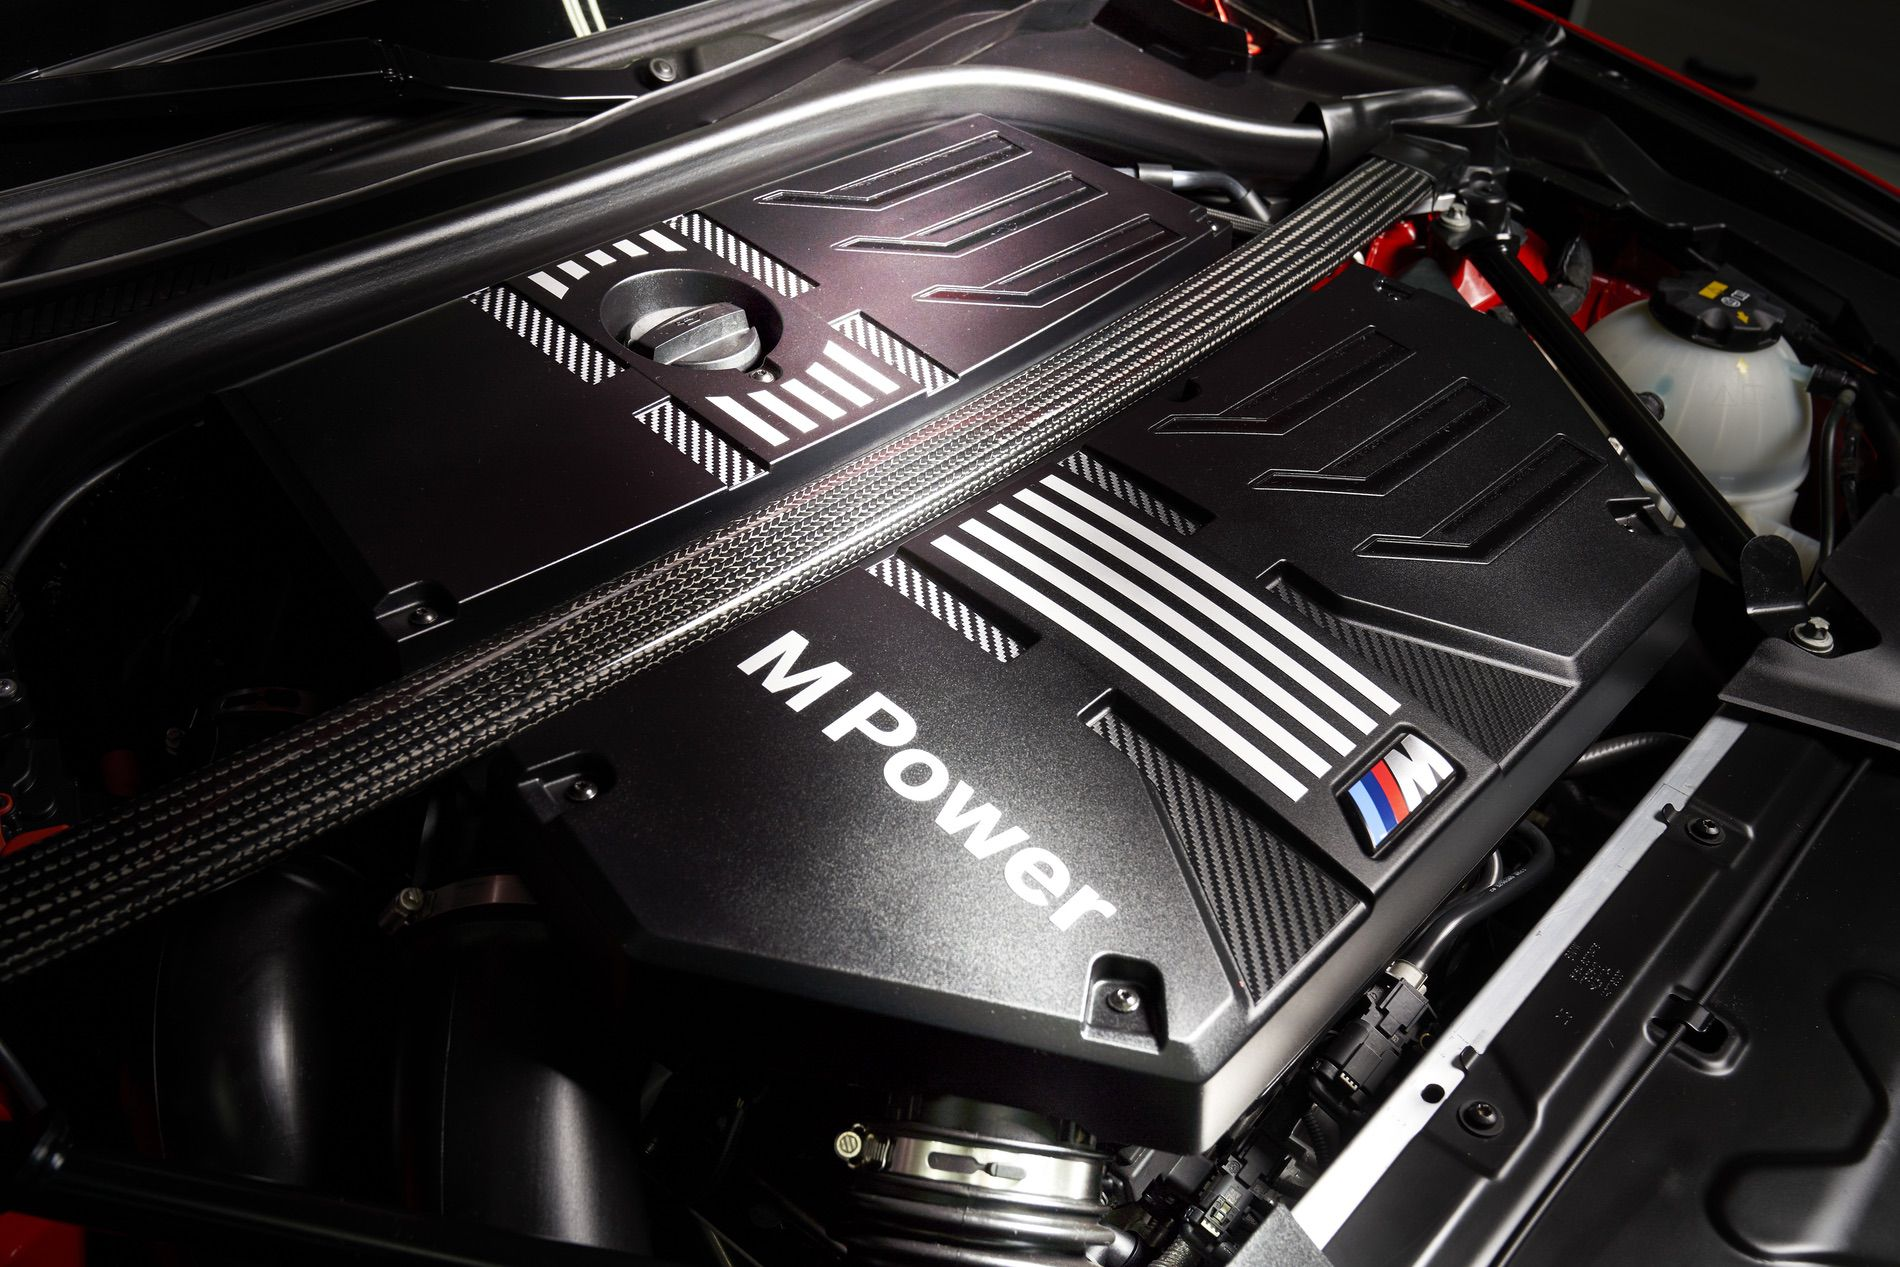 BMW Officially Confirms G80 M3 Will Get S58 Engine